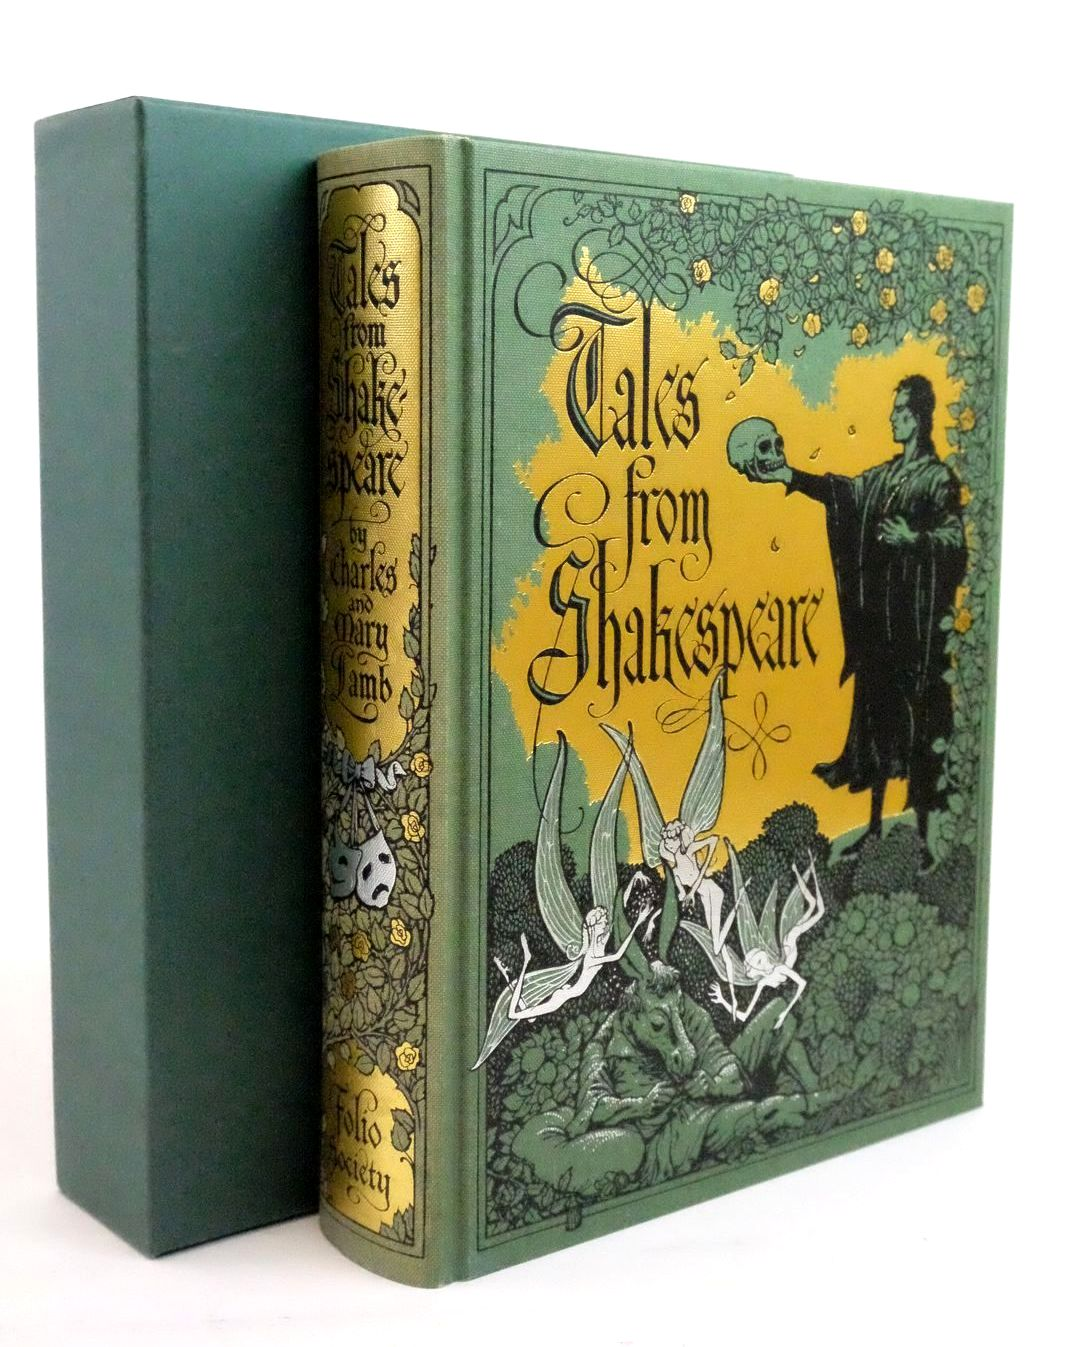 Photo of TALES FROM SHAKESPEARE written by Shakespeare, William Lamb, Charles Lamb, Mary illustrated by Maclise, Daniel Fuseli, Henry et al.,  published by Folio Society (STOCK CODE: 1321278)  for sale by Stella & Rose's Books